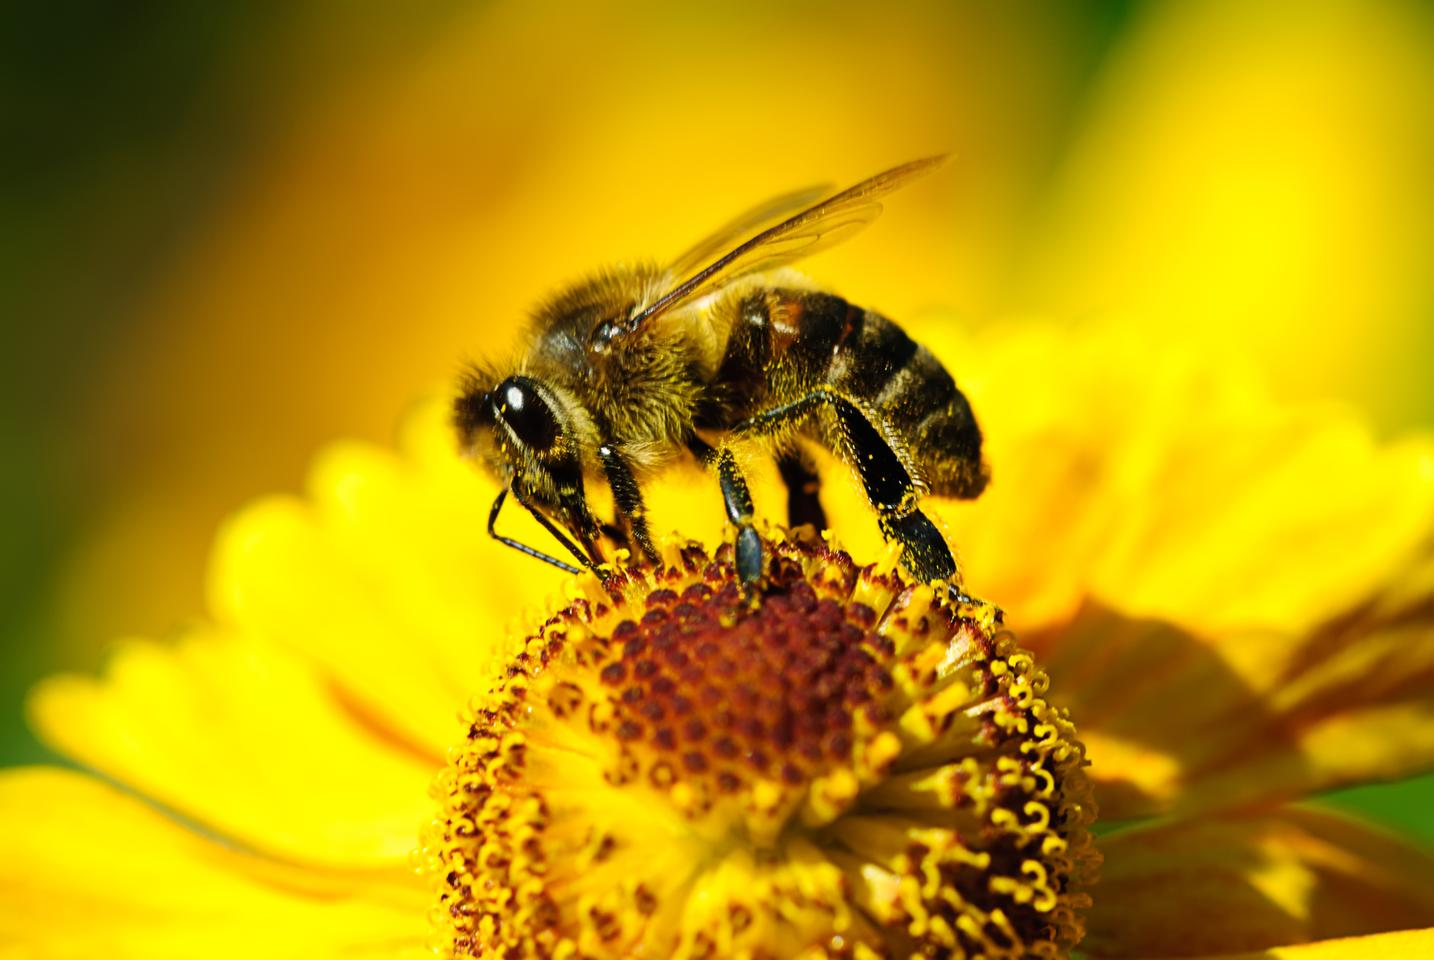 Scientists have developed a new type of ingestible microparticle that detoxifies common insecticides and could help address dwindling bee populations across the globe